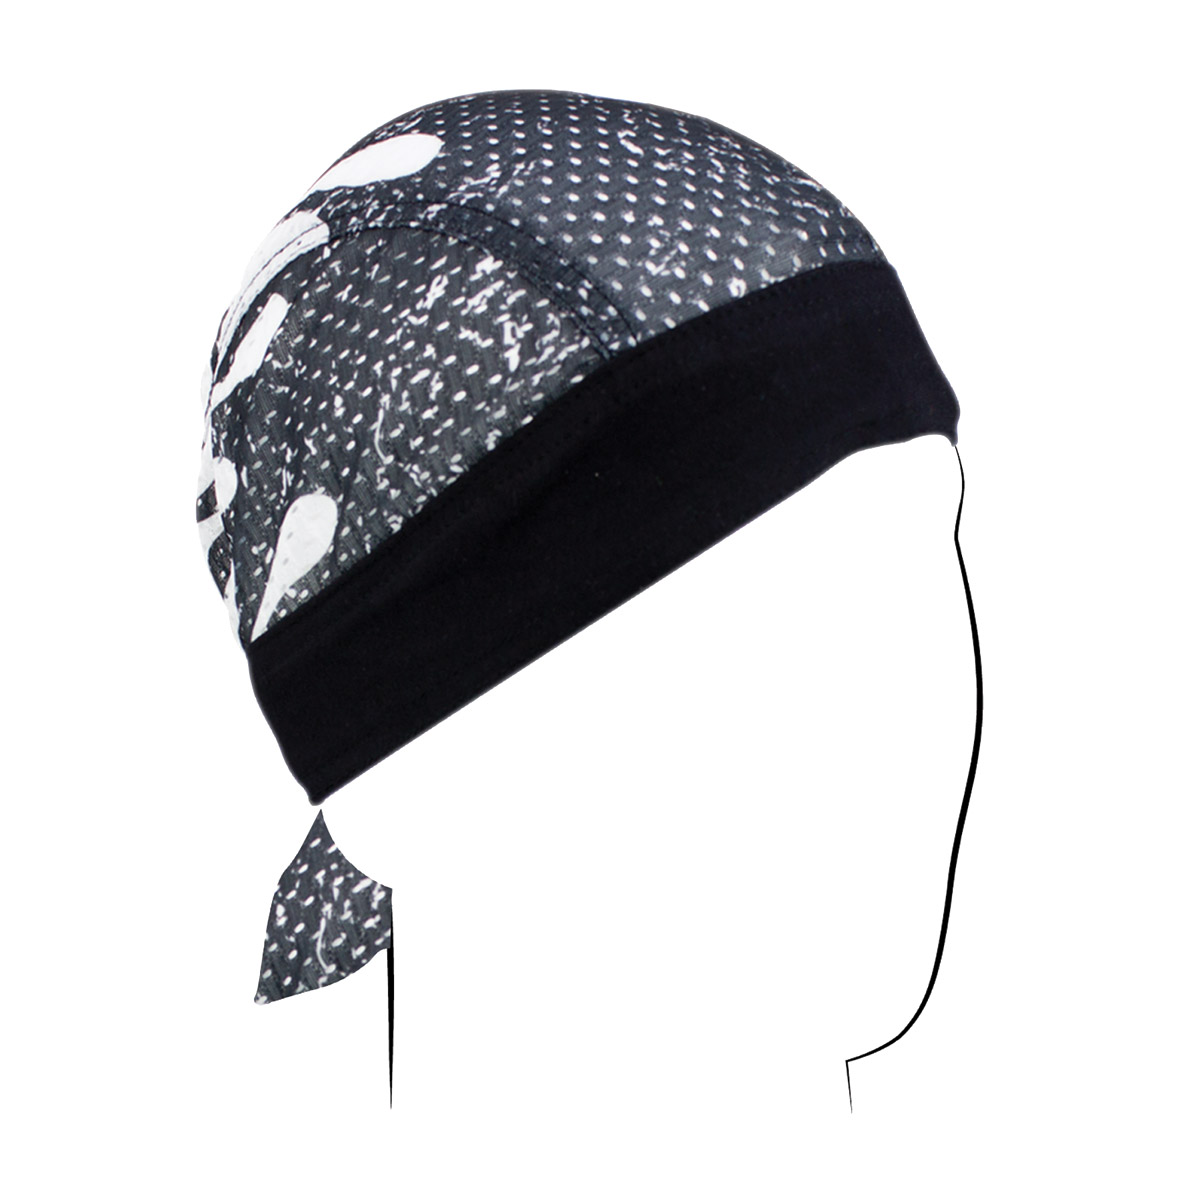 ZAN headgear Black and White Flame Vented Sport Flydanna Headwrap